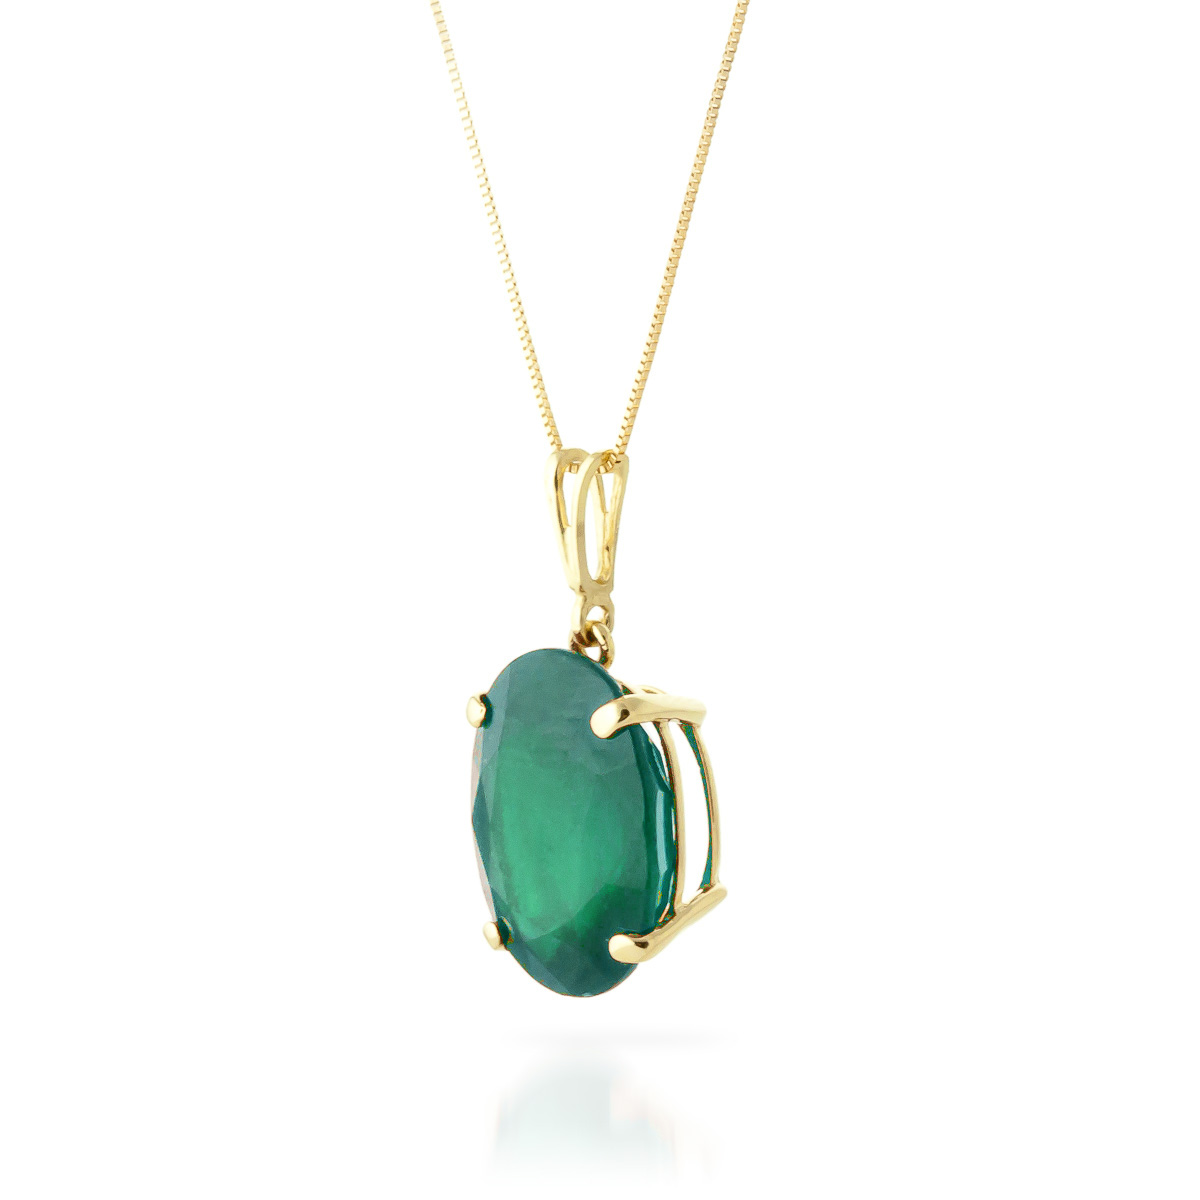 Oval Cut Emerald Pendant Necklace 6.5ct in 9ct Gold